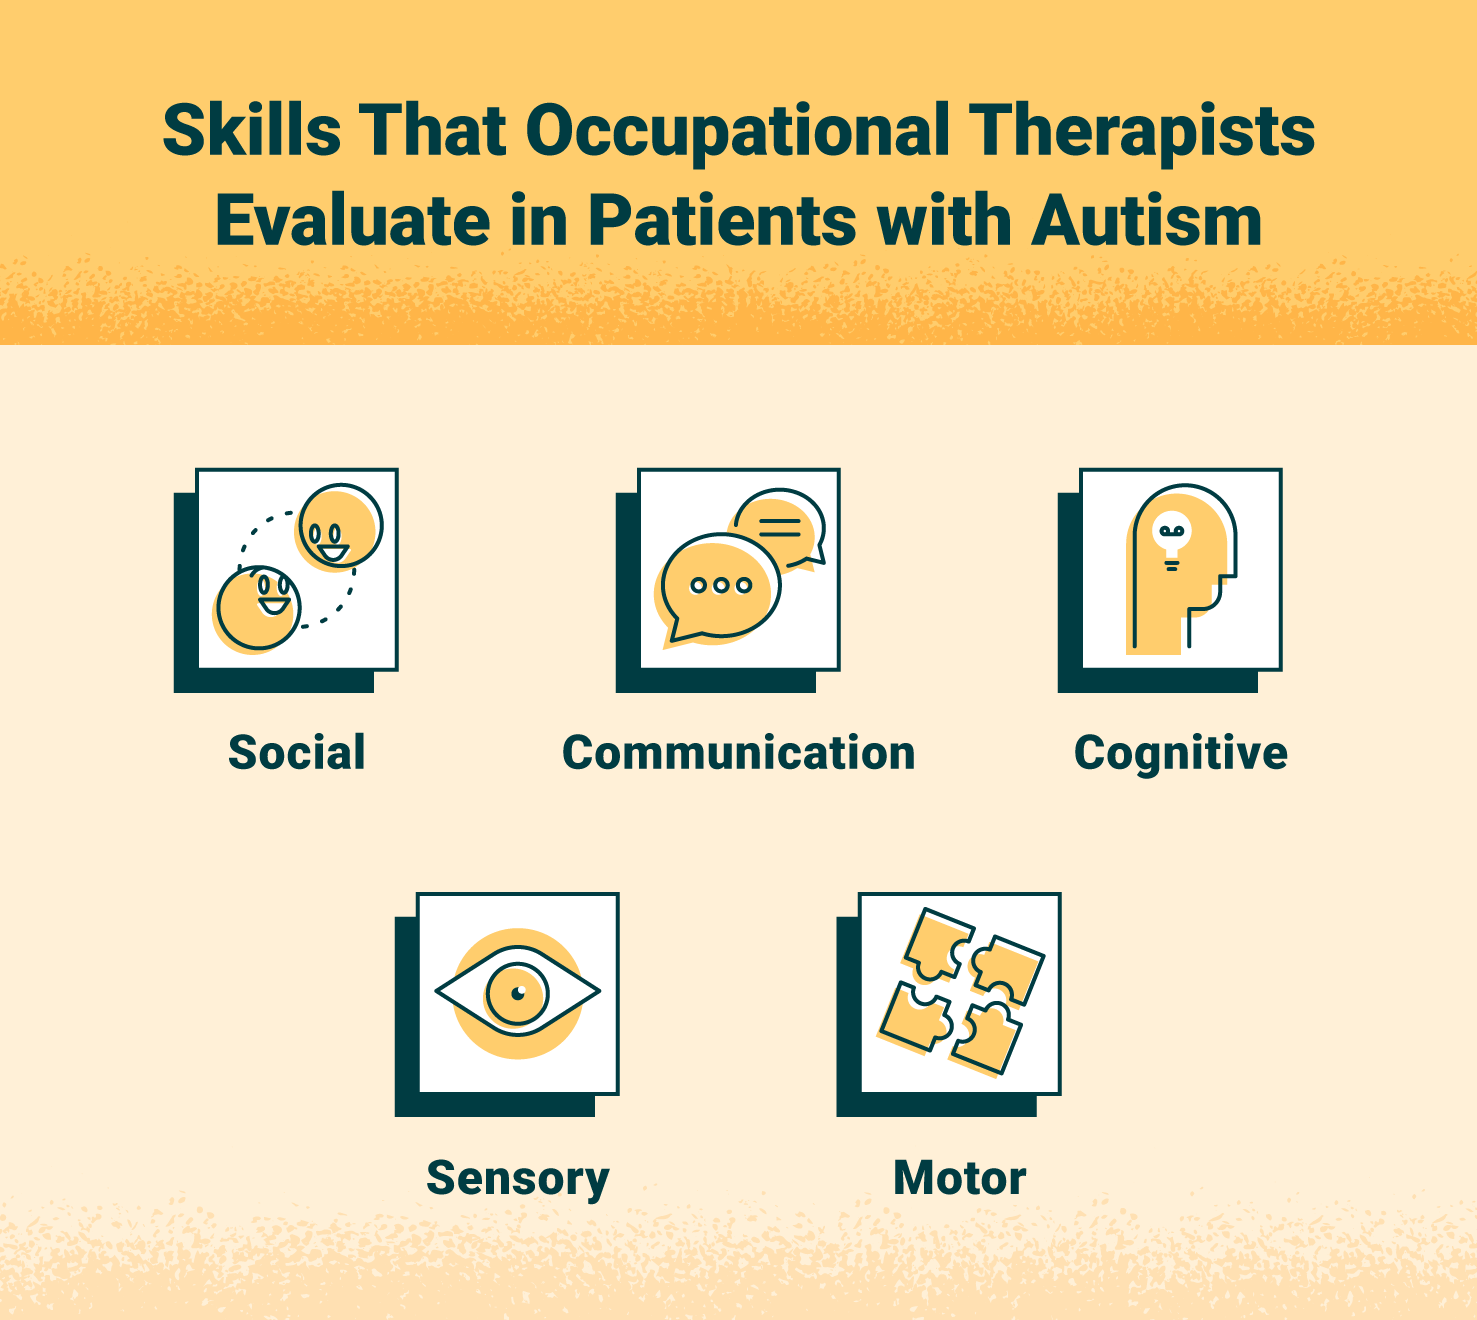 chart showing skills OT evaluate in patients with Autism